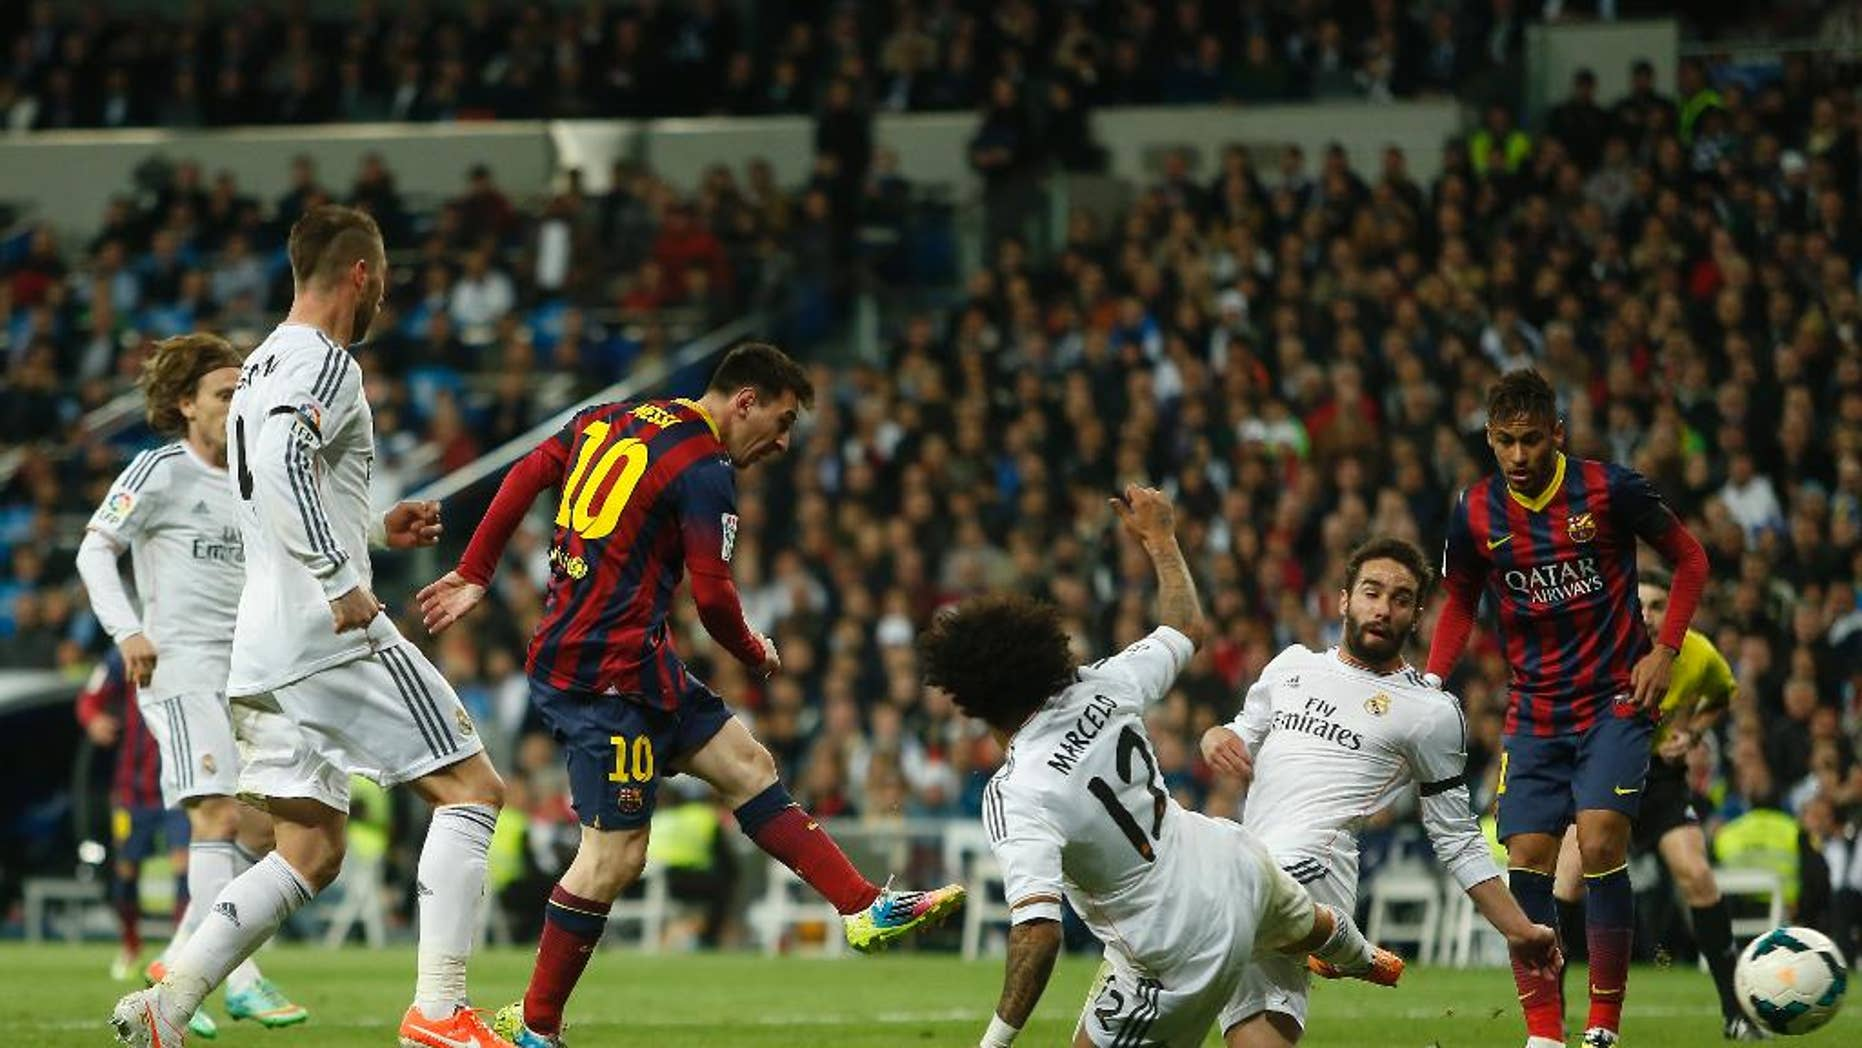 Barcelona's Lionel Messi from Argentina, centre left, scores his goal during a Spanish La Liga soccer match between Real Madrid and FC Barcelona at the Santiago Bernabeu  stadium in Madrid, Spain, Sunday, March 23, 2014. (AP Photo/Andres Kudacki)